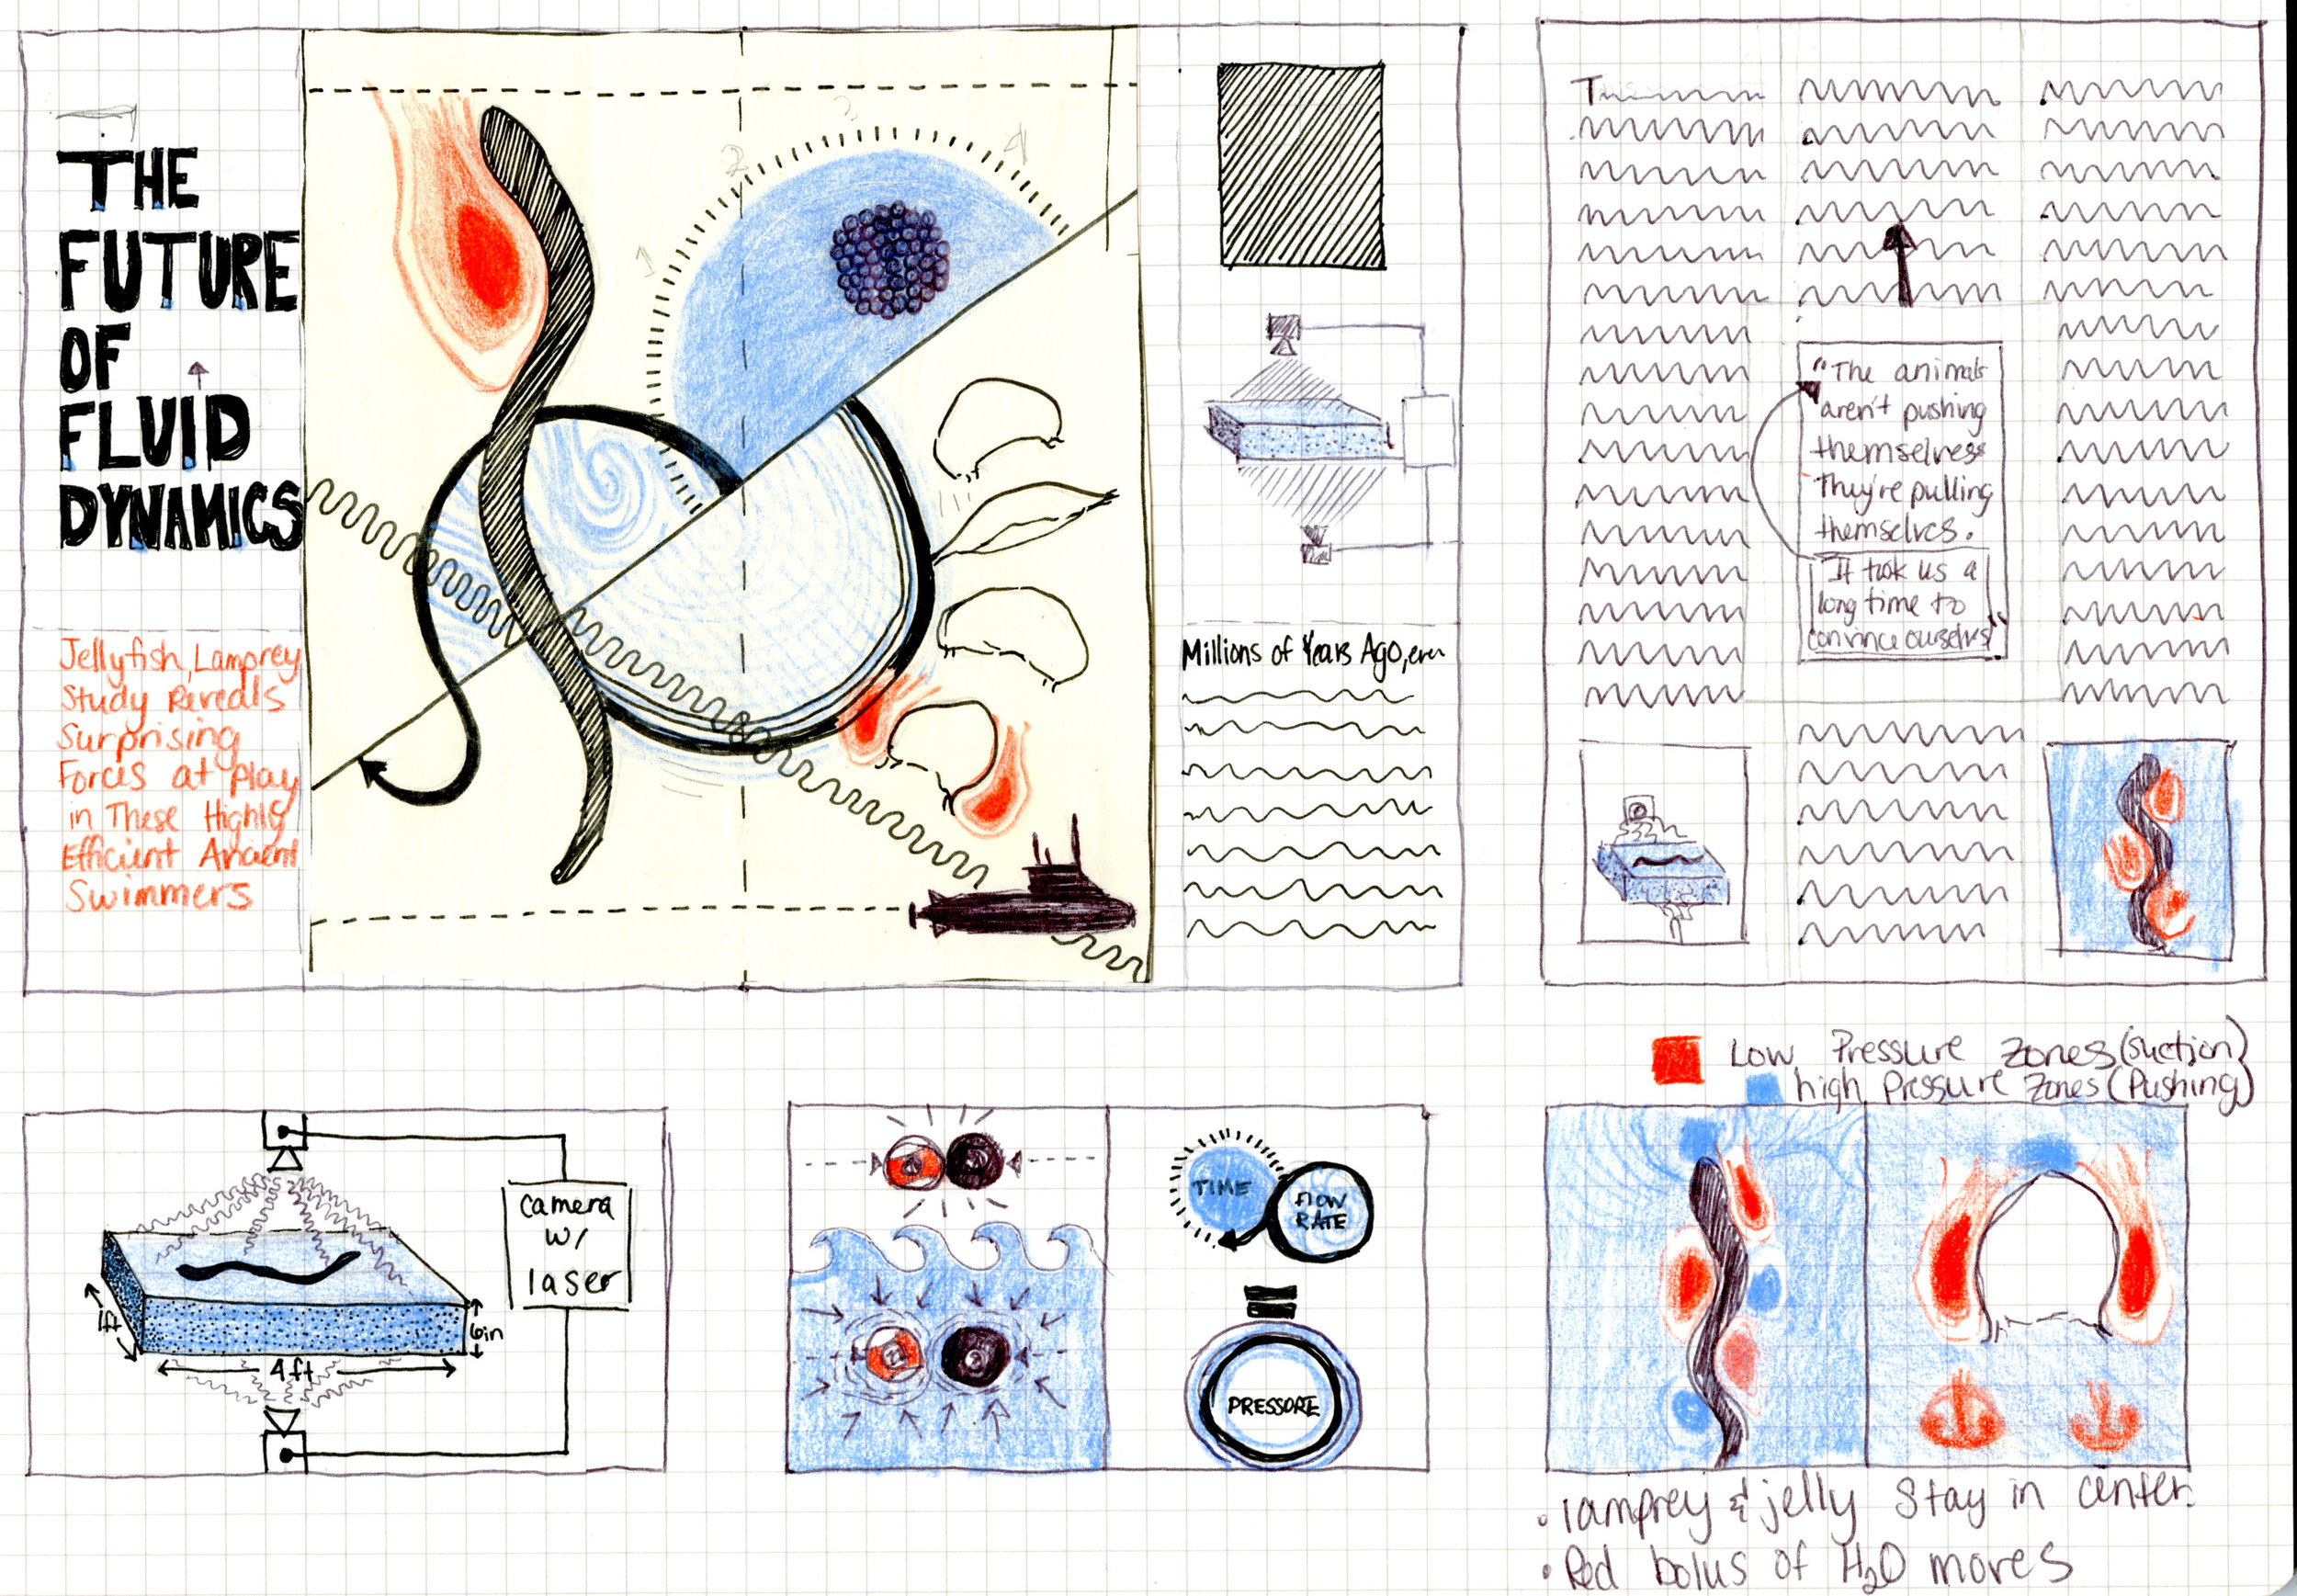 Fluid Dynamics Article Design & Illustration Sketch